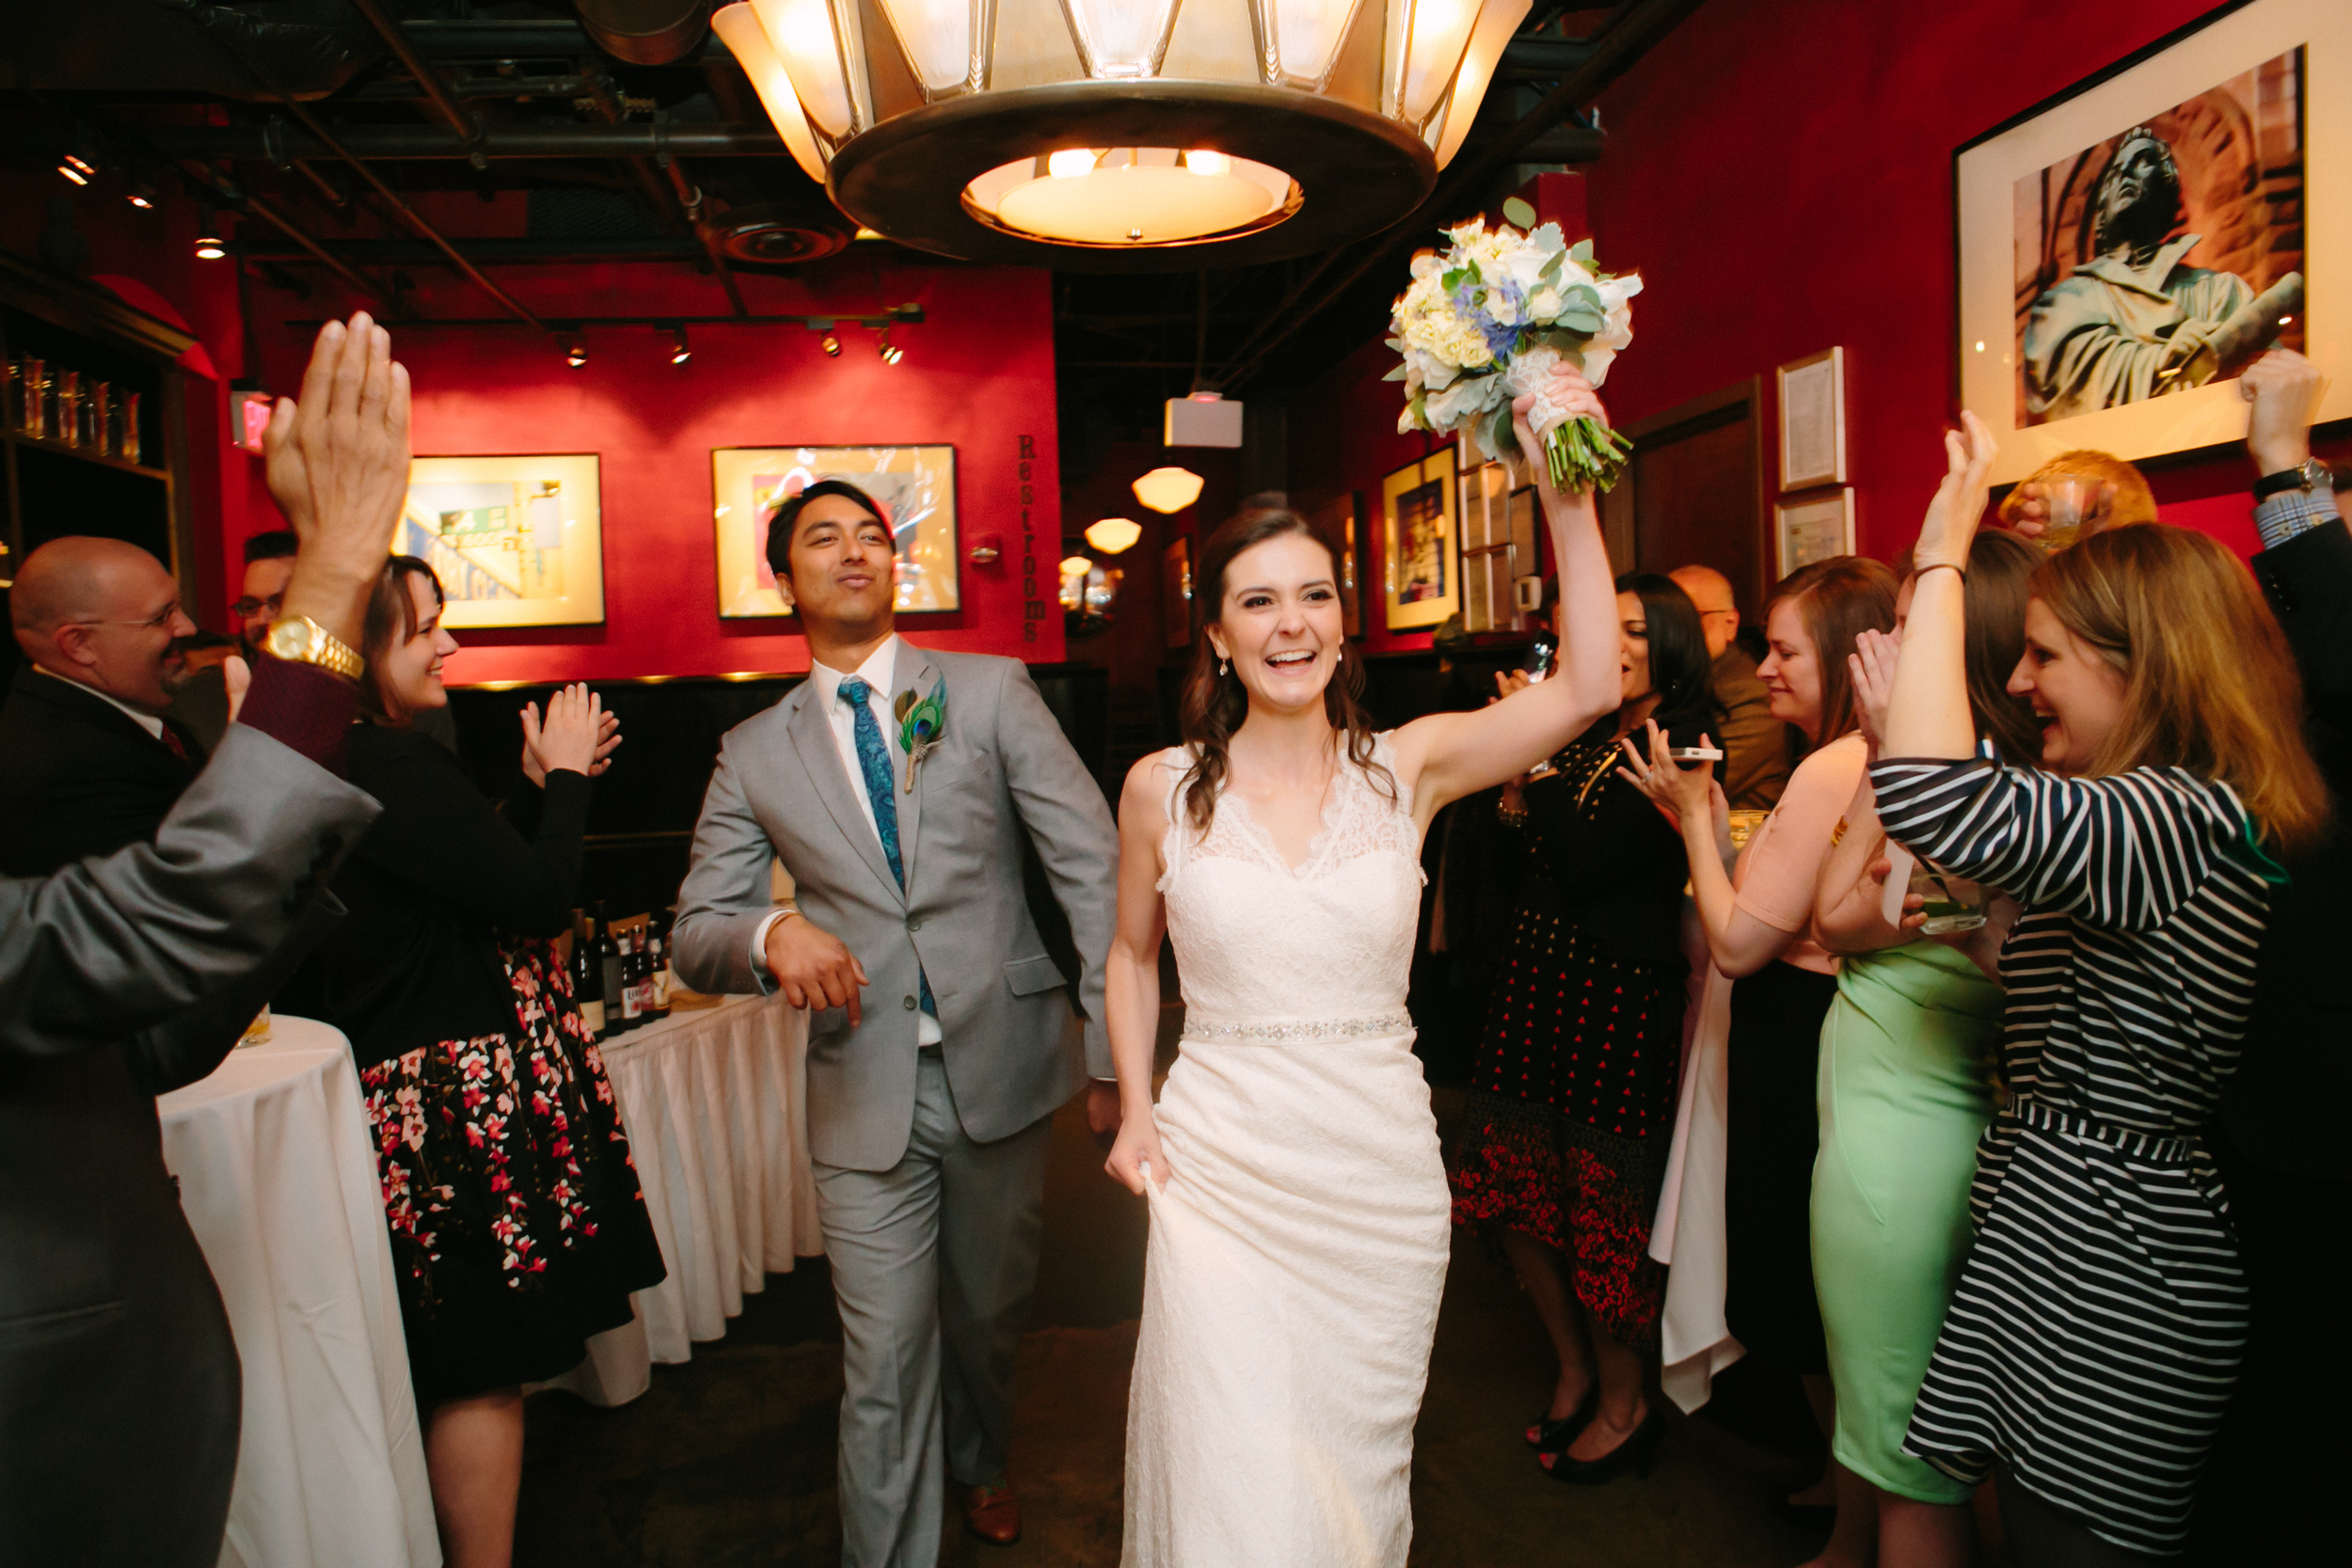 Logans Tavern Weddings_Bart & Dana Wed-204-2.jpg